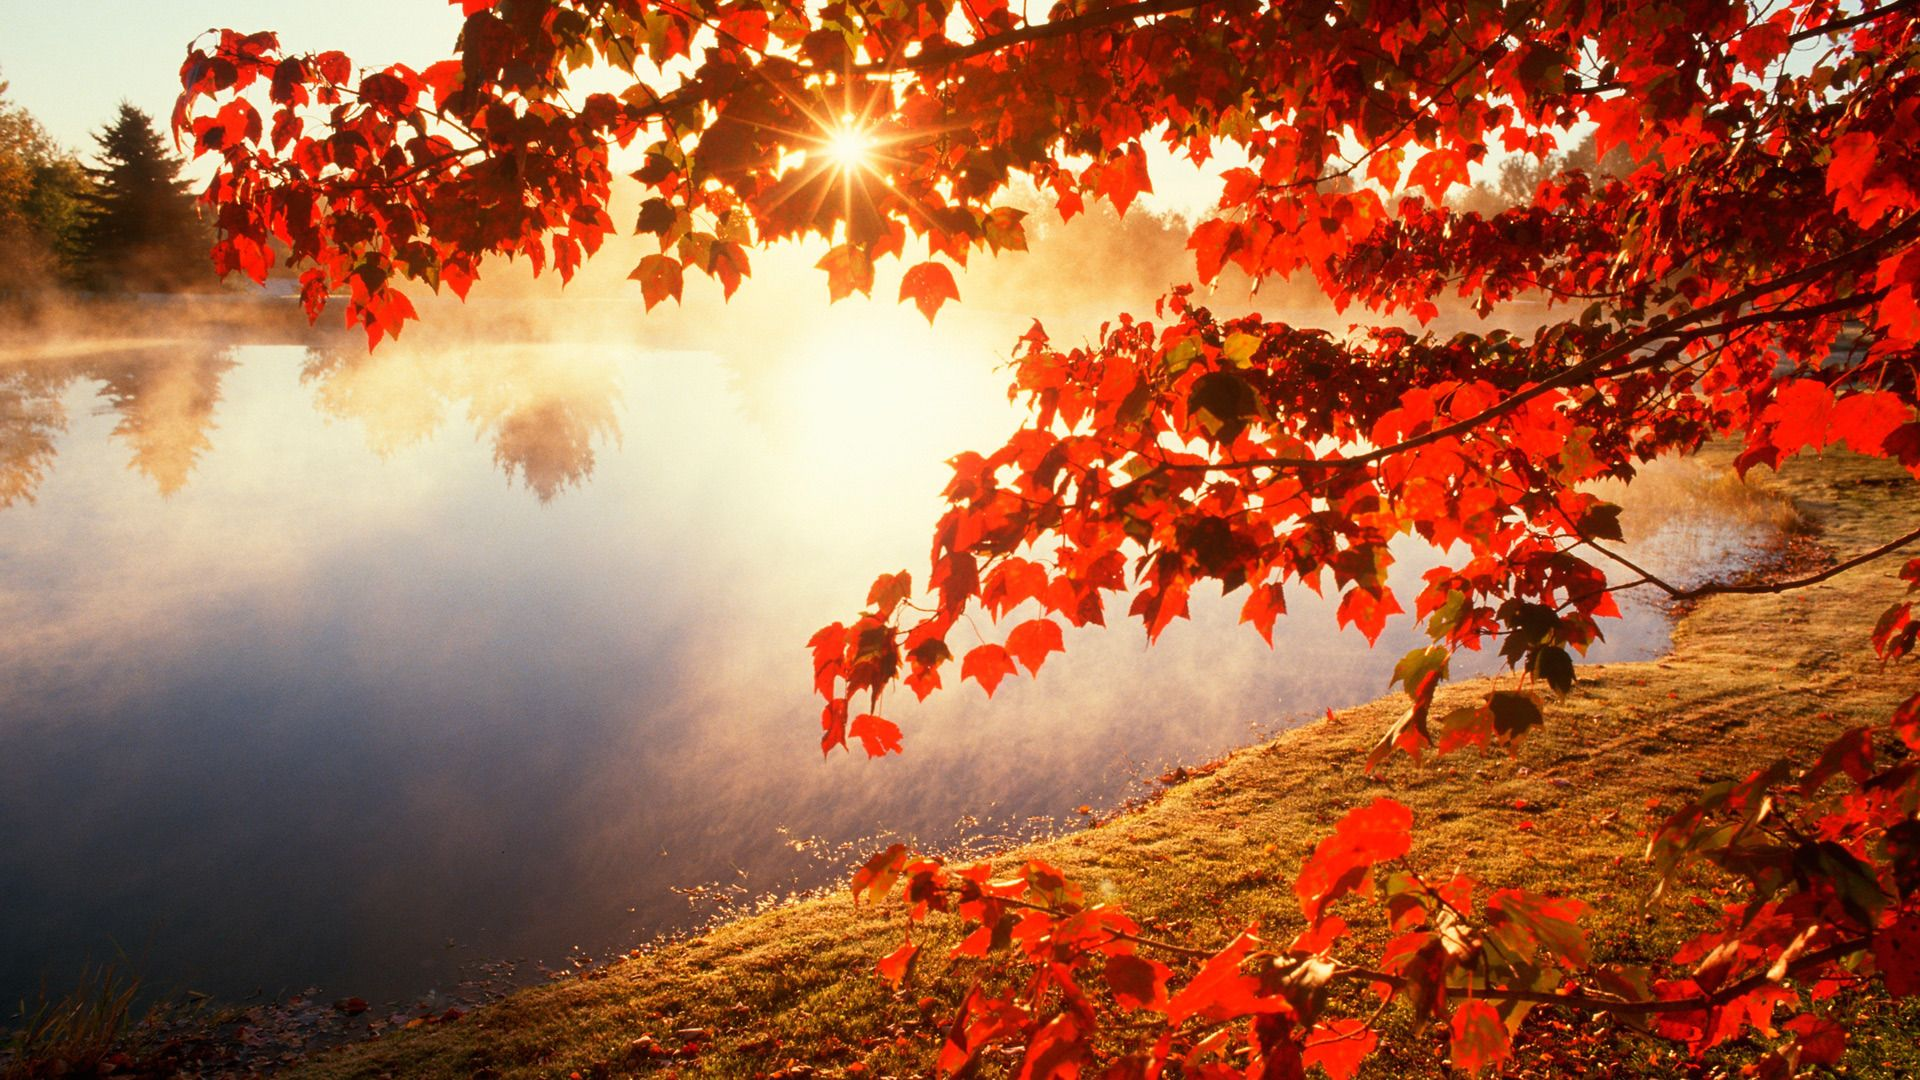 Autumn Leaves And Autumn Memories From Last Year Autumn Leaves Wallpaper Fall Wallpaper Autumn Morning